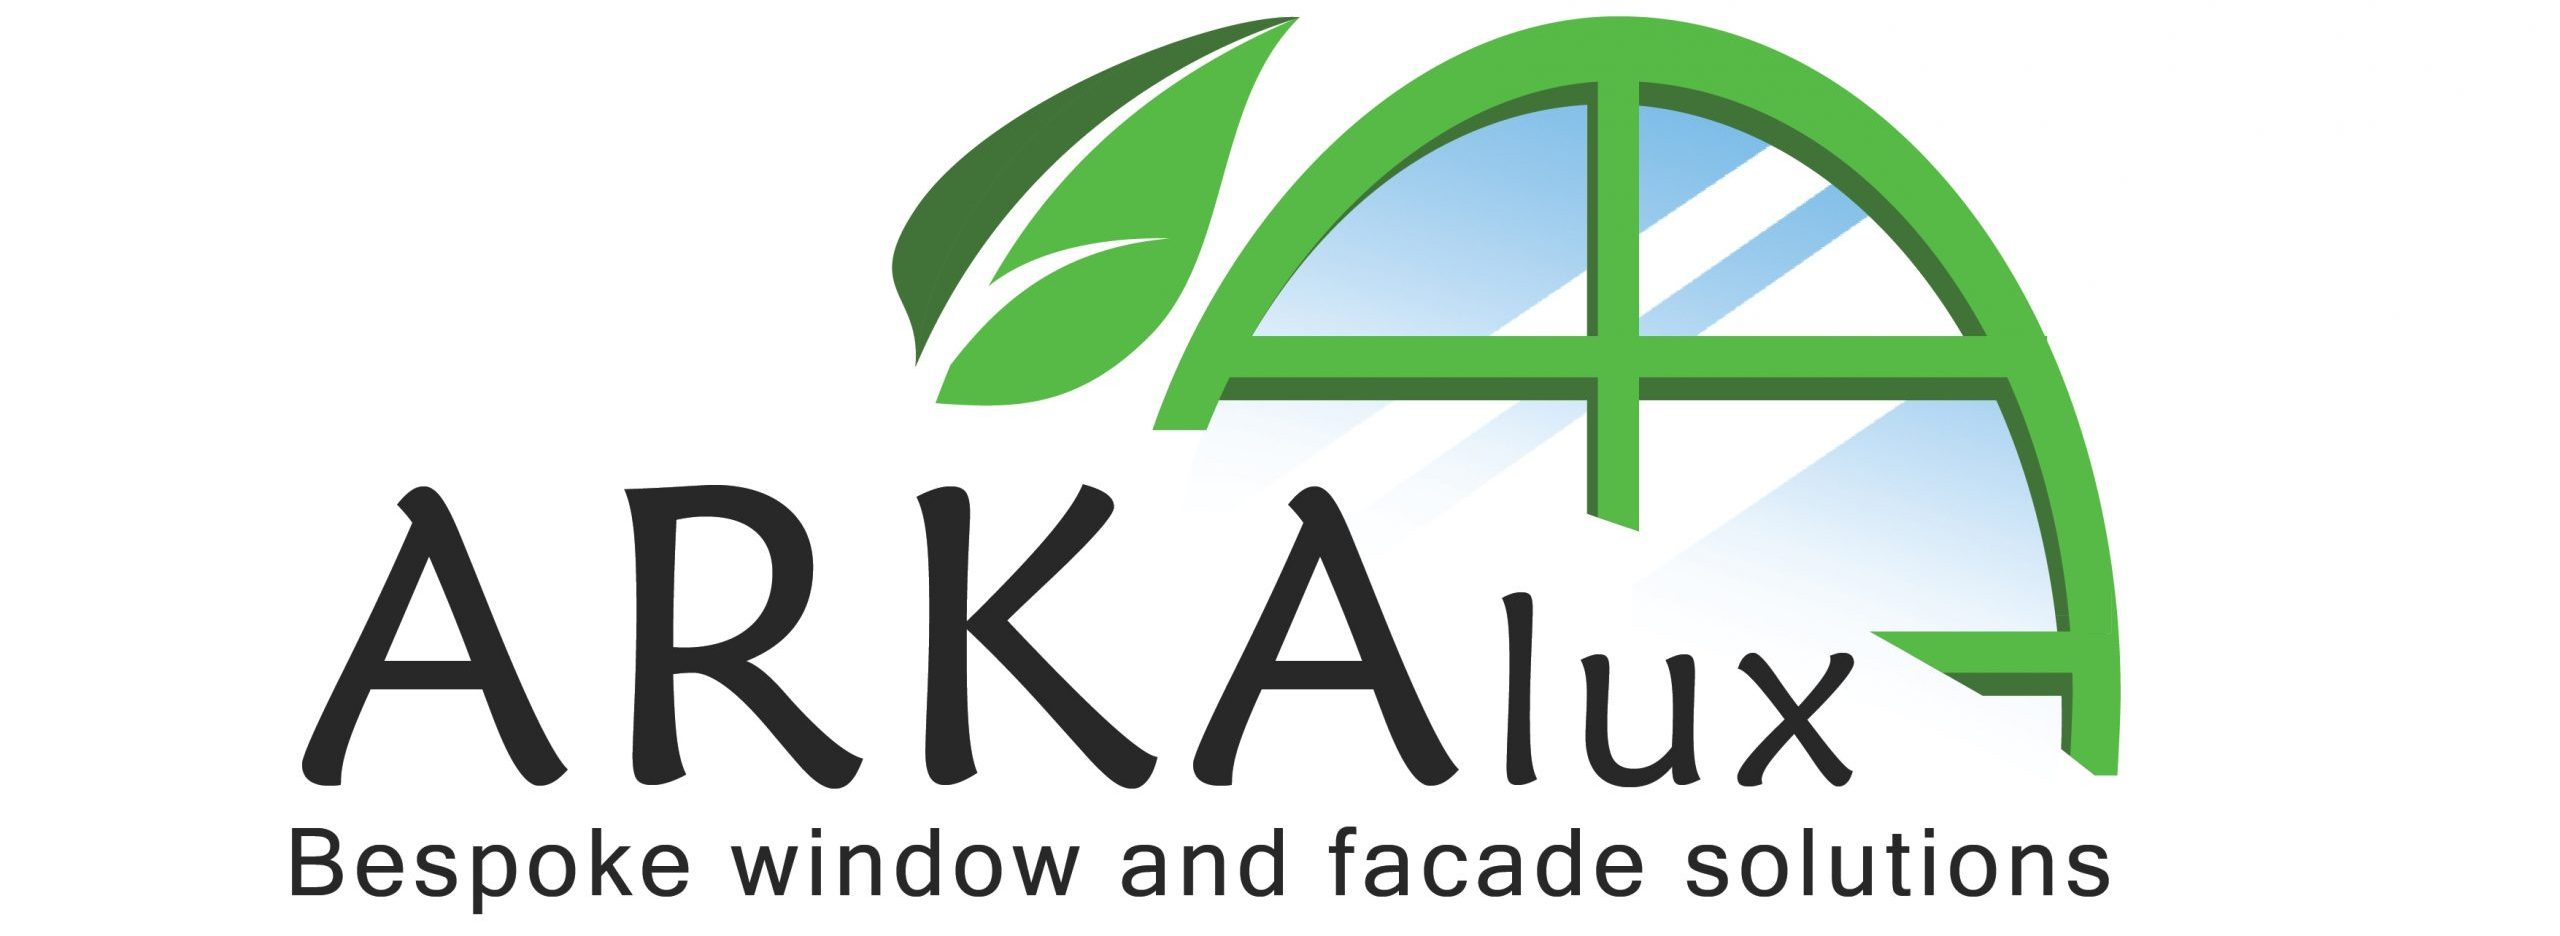 ARKA lux